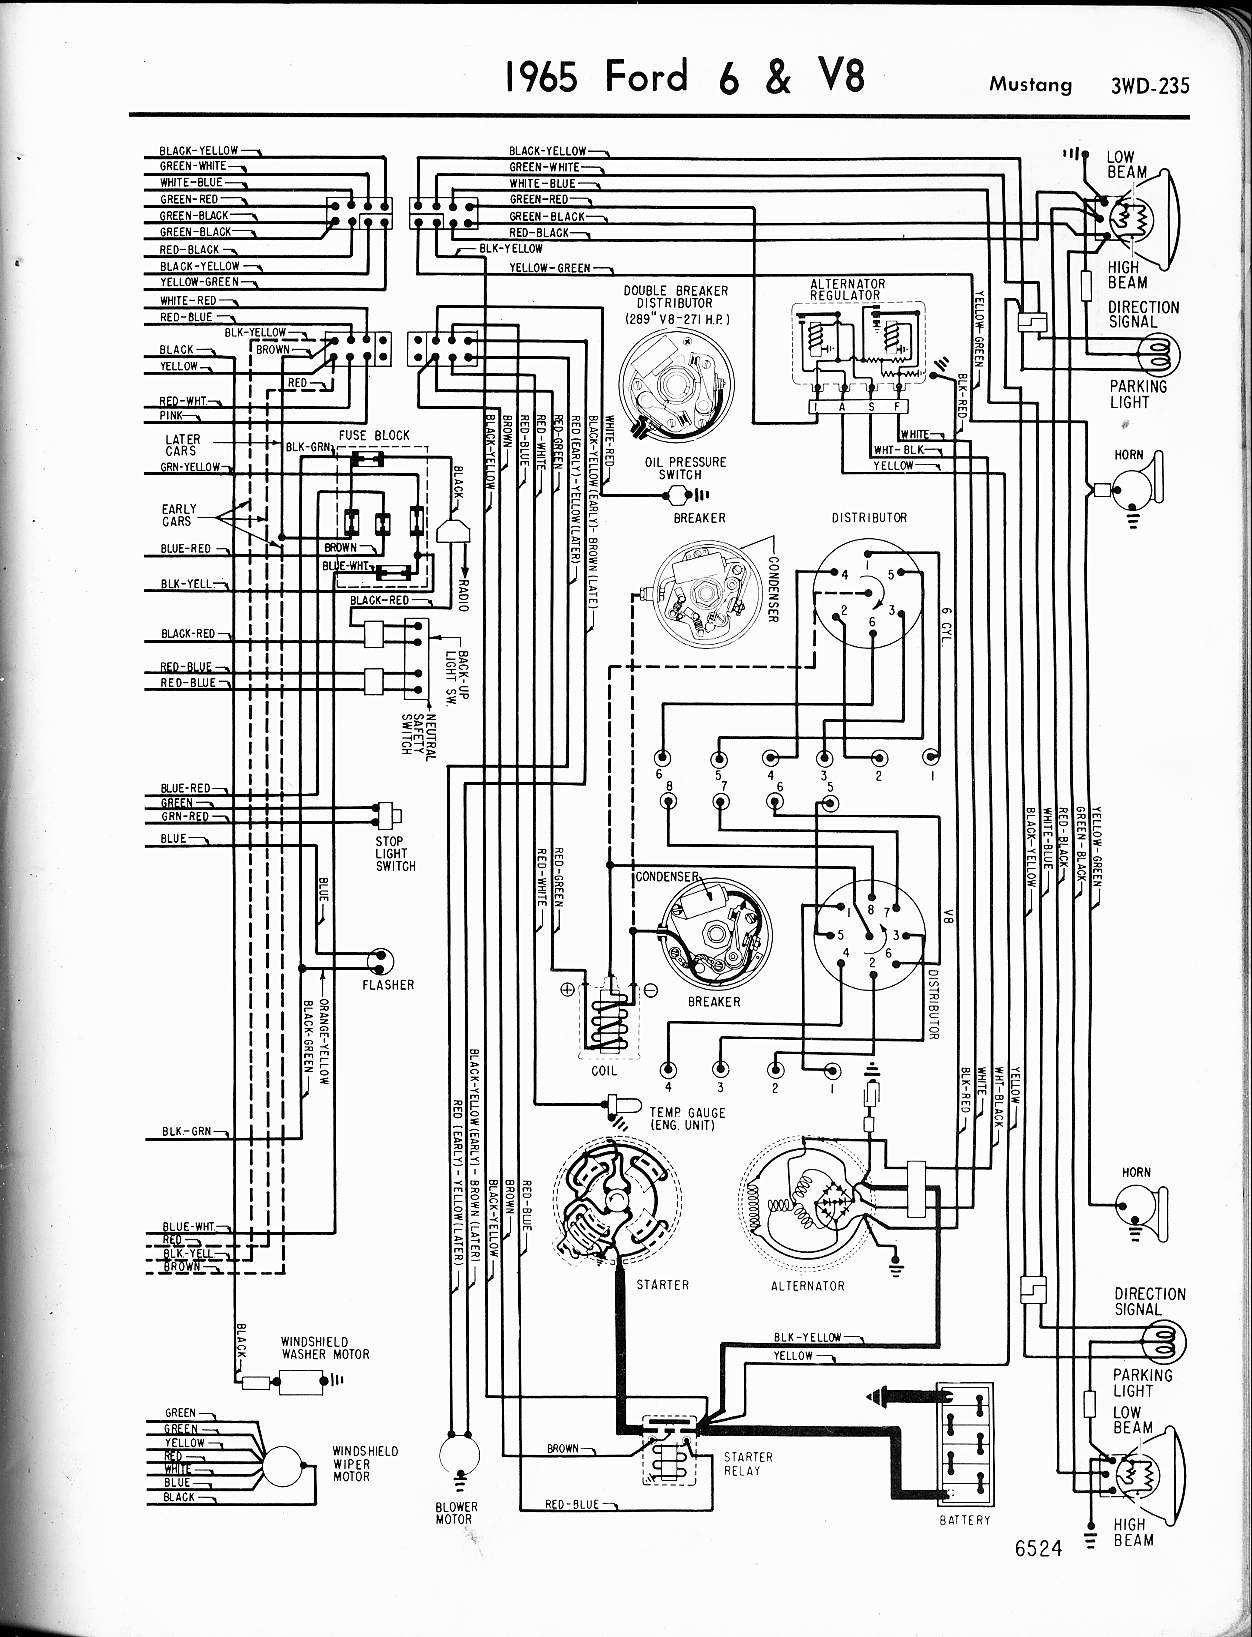 1989 F250 Wiring Diagram Library 2002 F350 Turn Signal Mustang Harness Schematic Detailed Schematics Fuel Tank